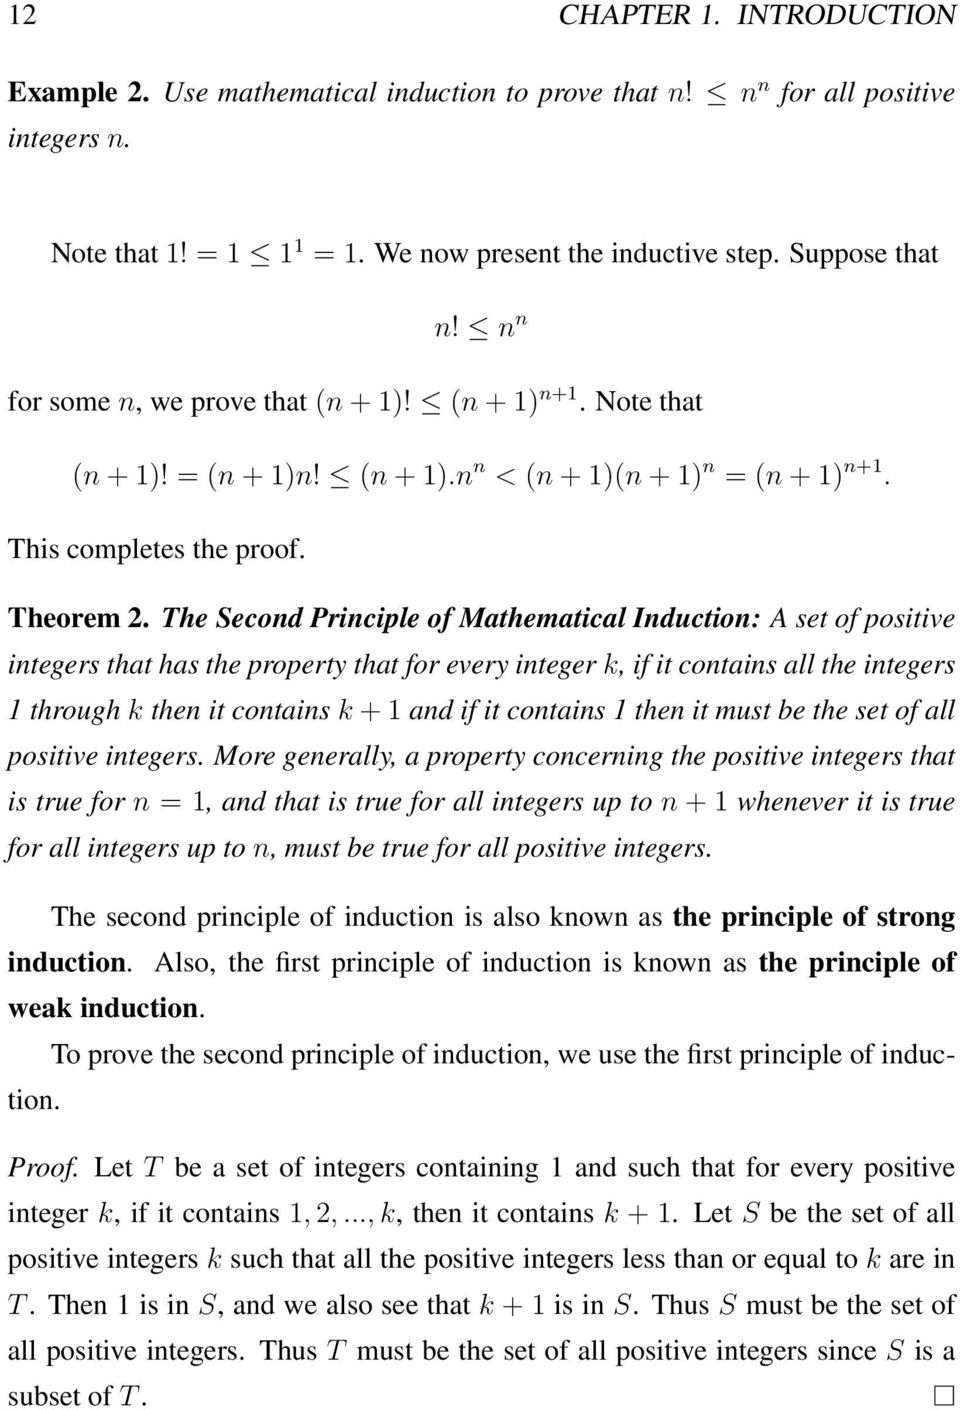 The Second Principle of Mathematical Induction: A set of positive integers that has the property that for every integer k, if it contains all the integers 1 through k then it contains k + 1 and if it